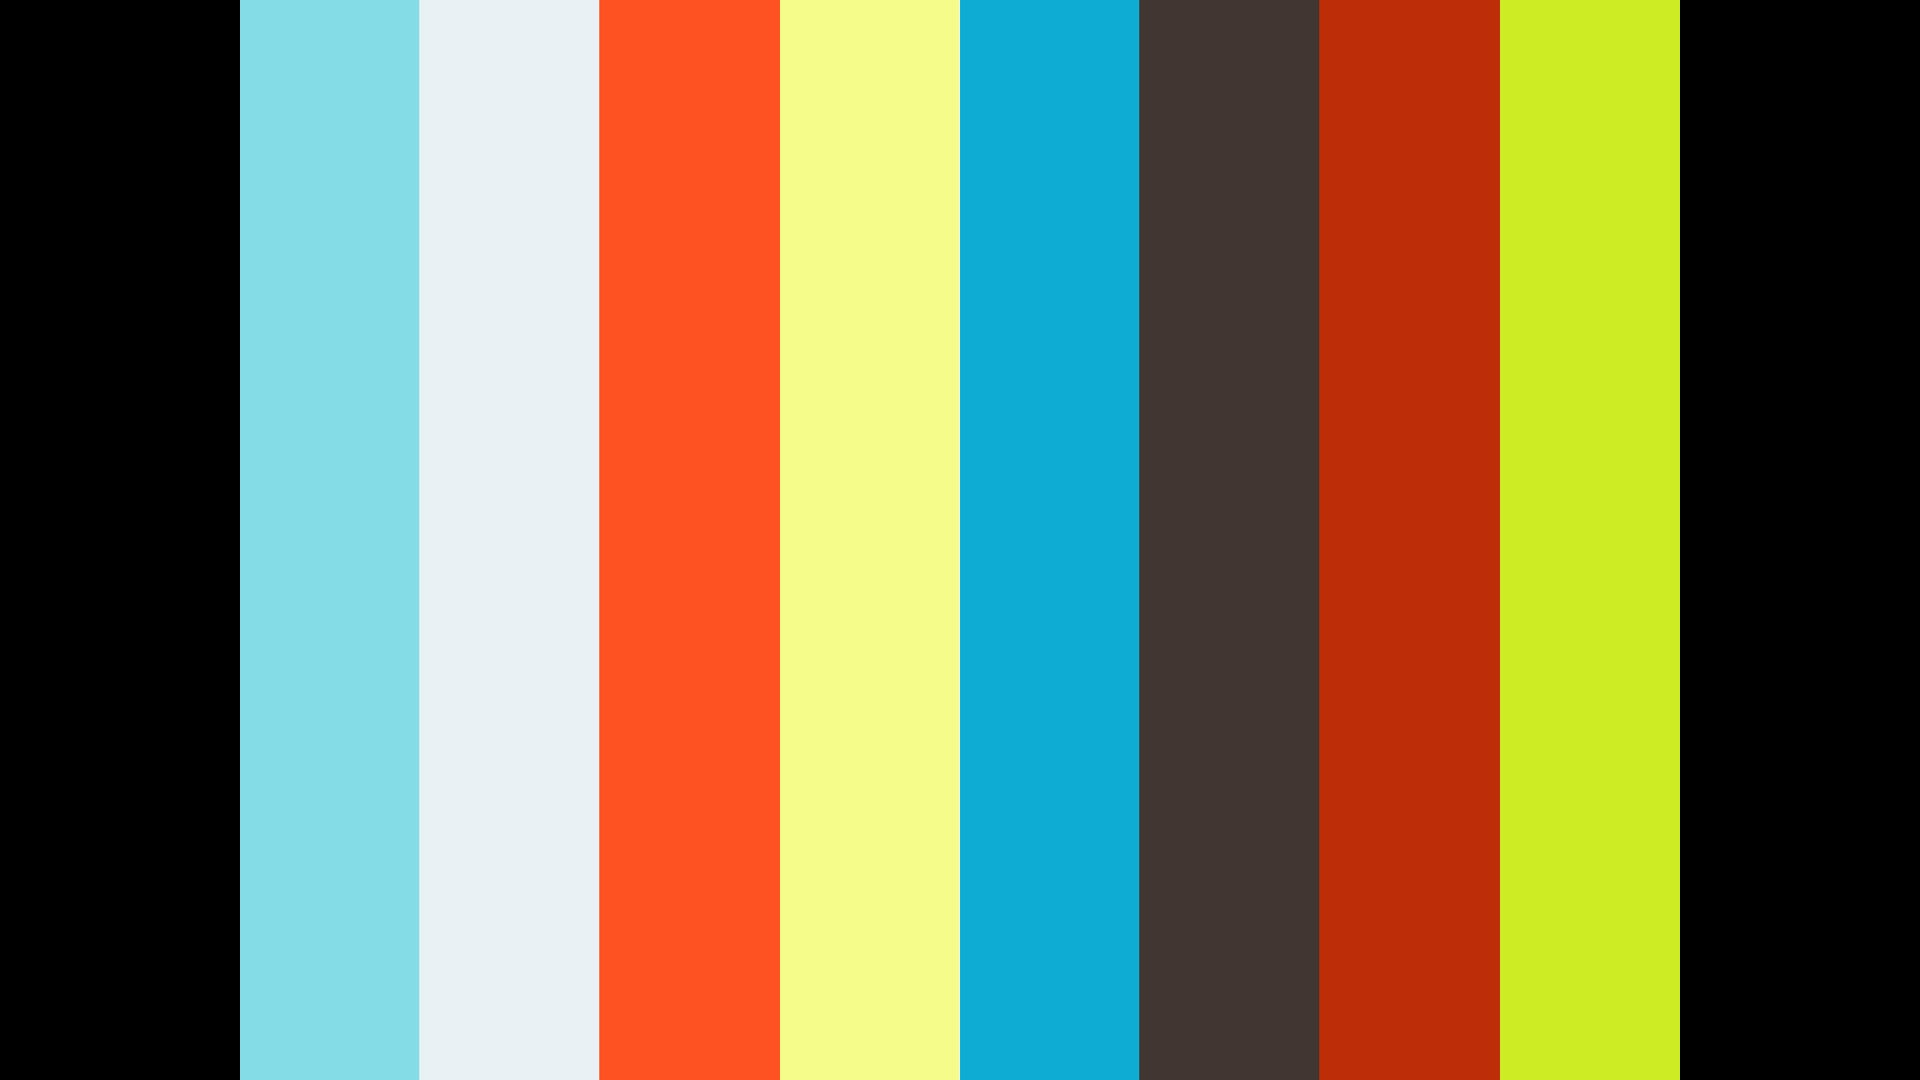 Zacuto's Next Generation Recoil